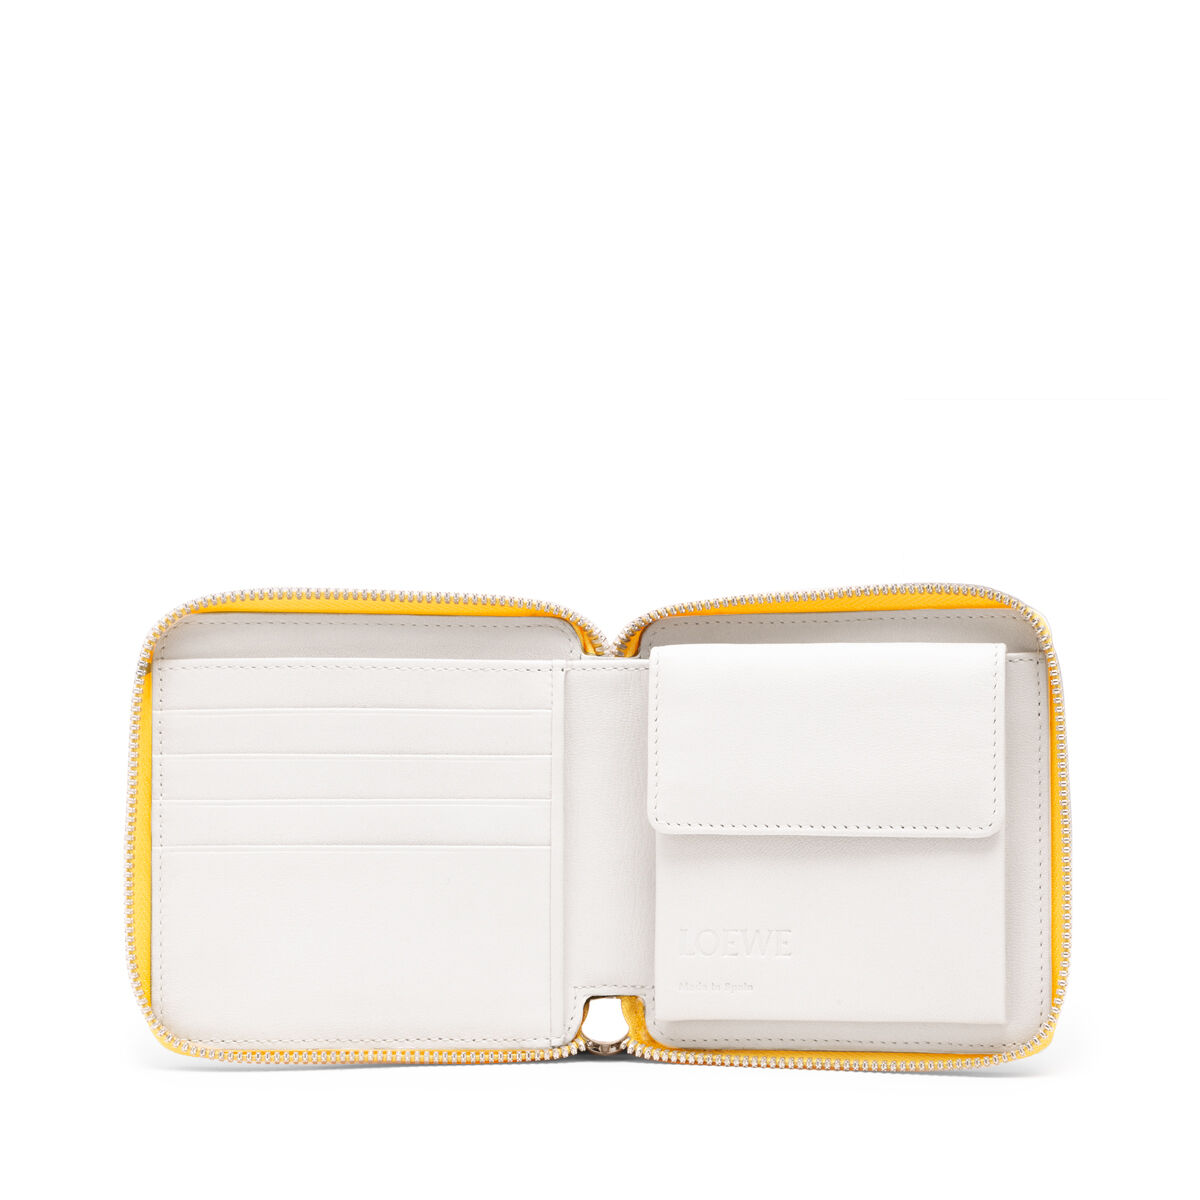 LOEWE Square Zip Wallet Yellow/White all